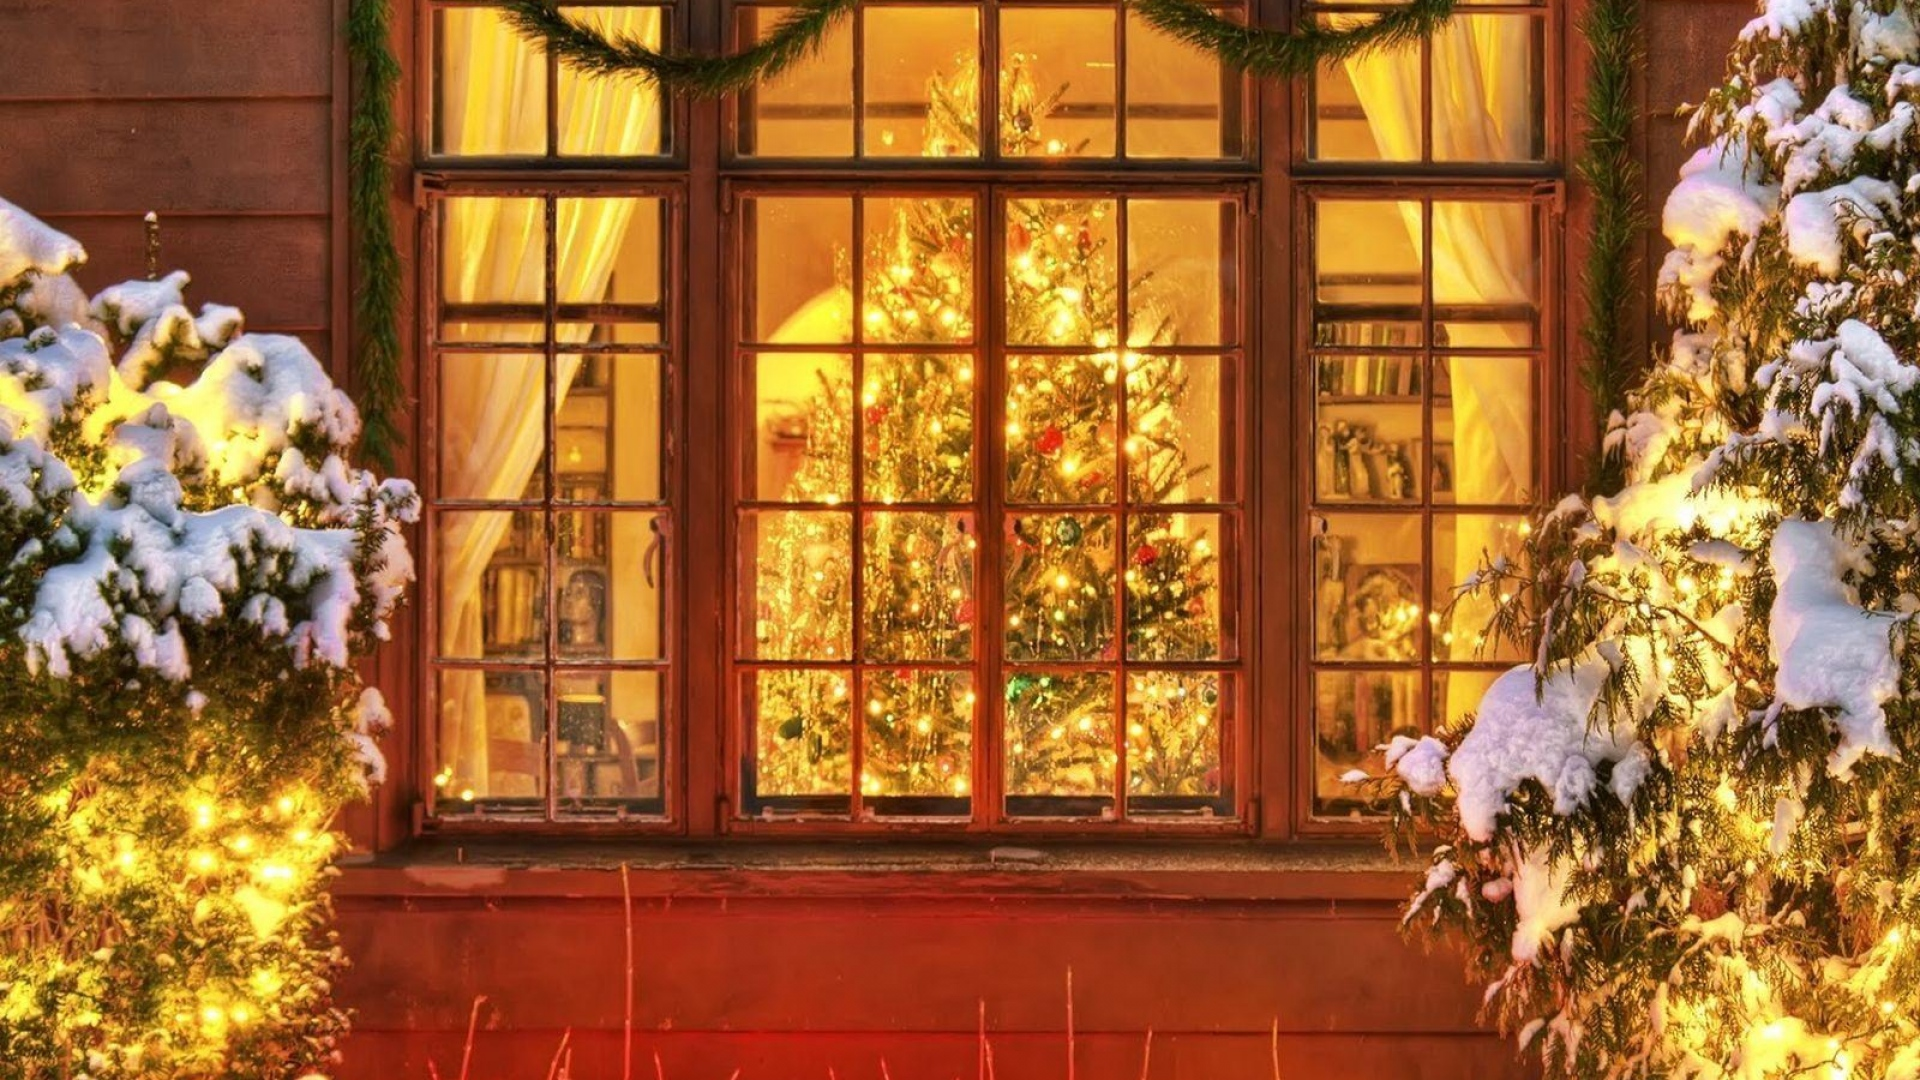 Christmas Window Hd Wallpaper Background Image